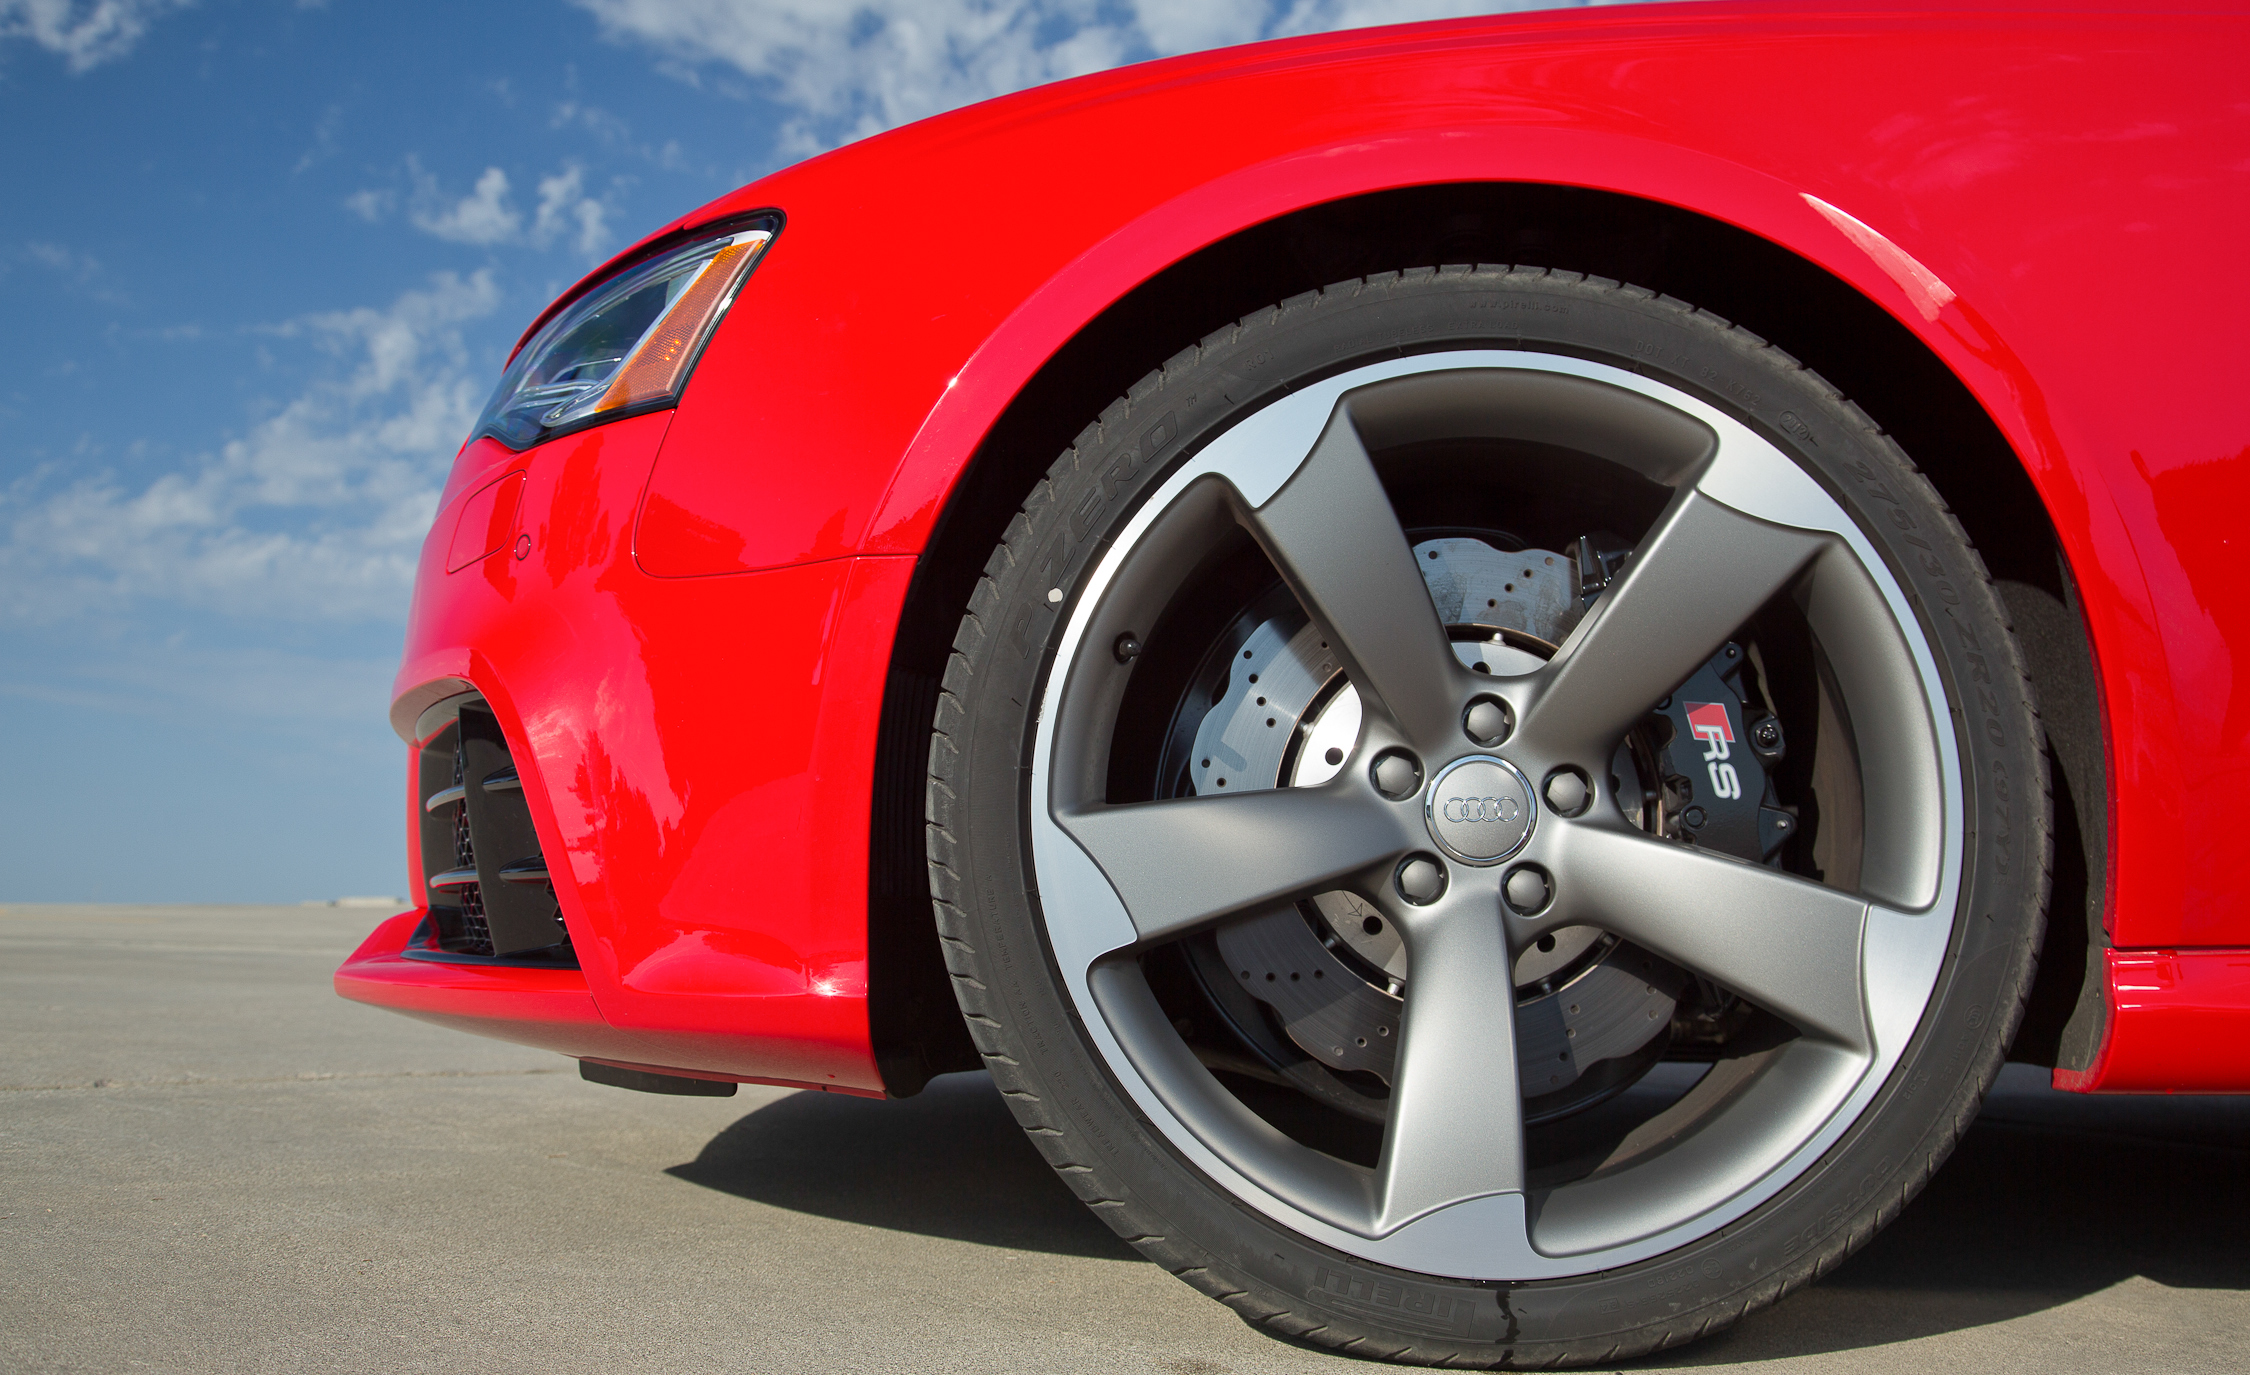 2013 Audi RS 5 Exterior View Wheel (View 17 of 41)